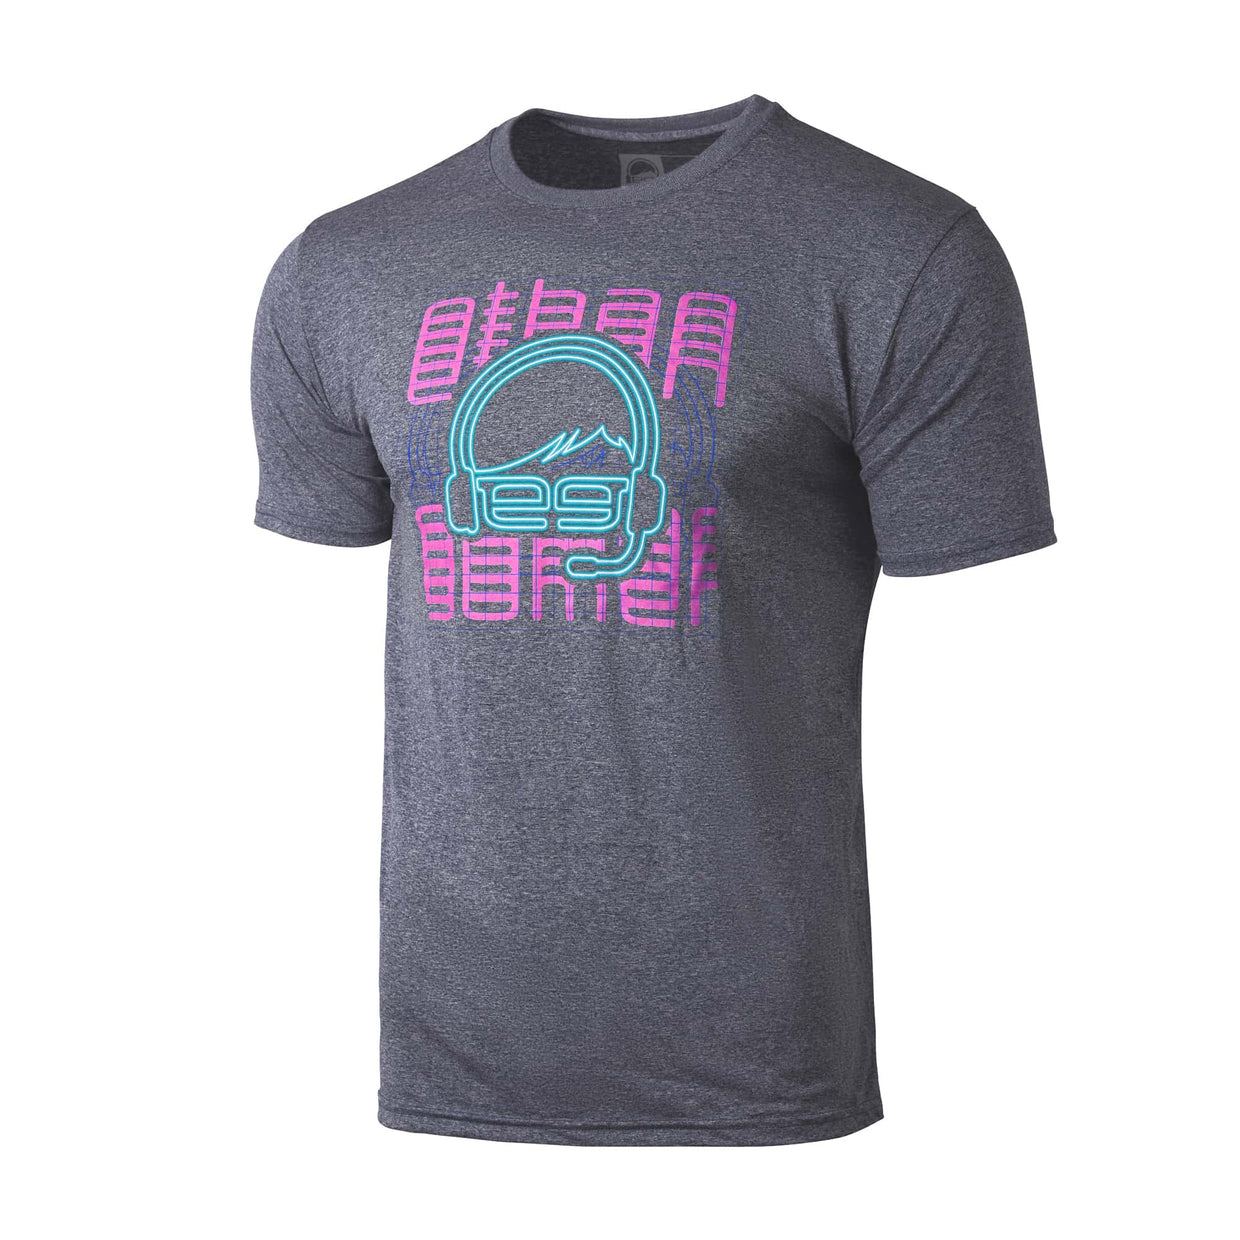 Ethan Gamer 'Neon Glitch' Performance Tee